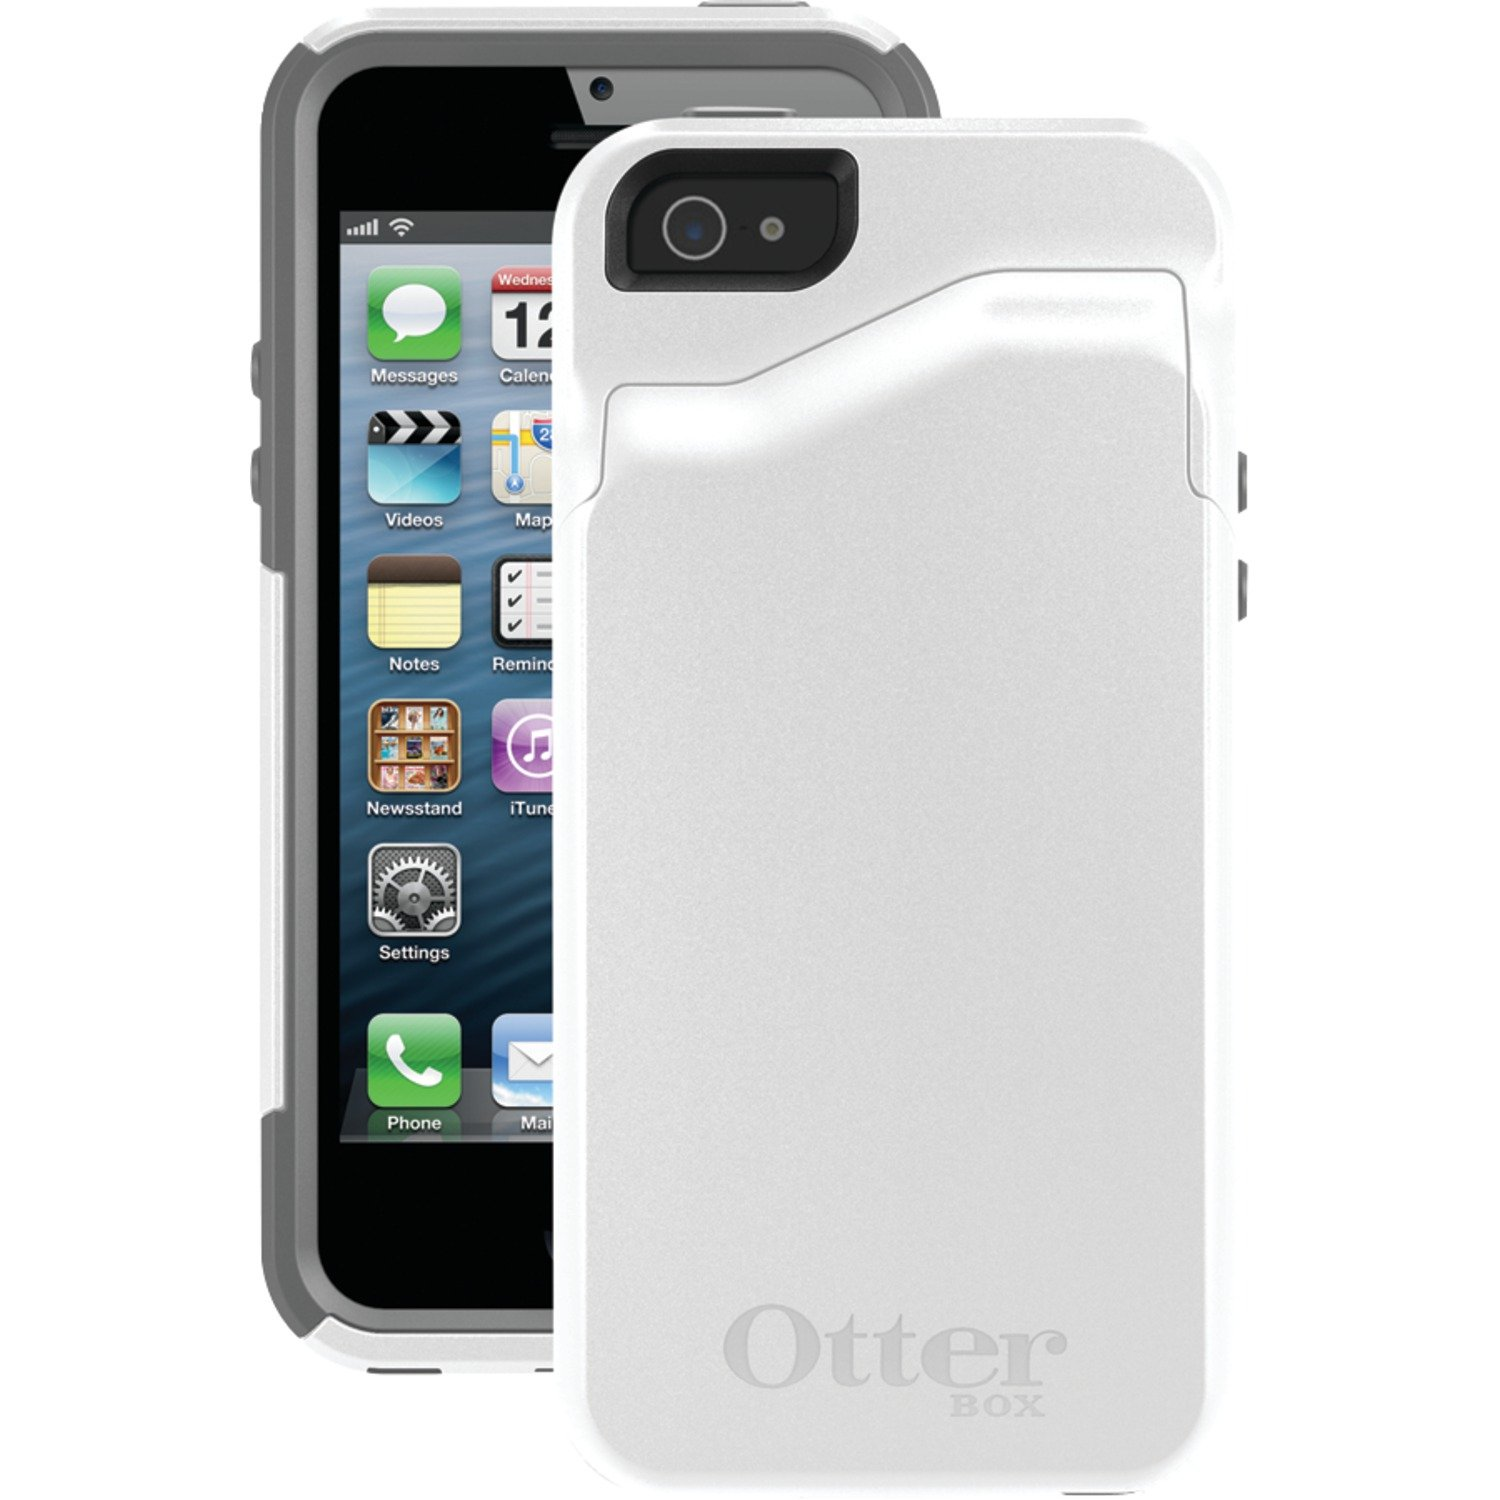 newest 510fd a643b OtterBox COMMUTER WALLET SERIES Case for iPhone 5/5s/SE - Retail Packaging  - GLACIER (WHITE/GUNMETAL GREY)